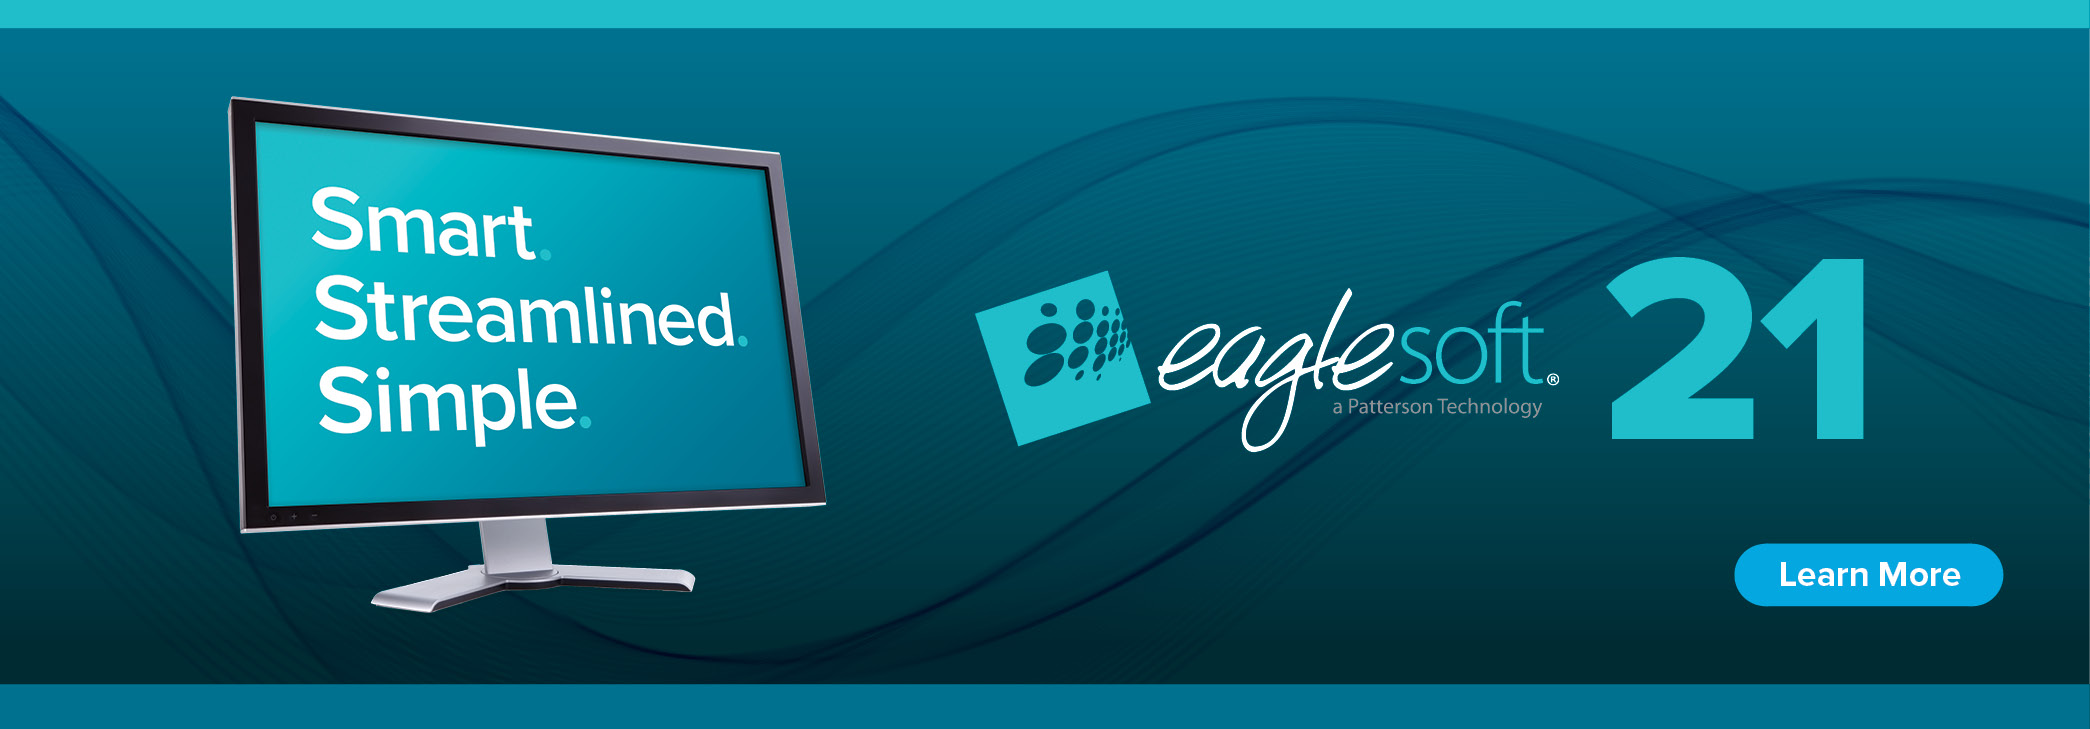 Smart. Streamlined. Simple. Eaglesoft 21. Click to learn more